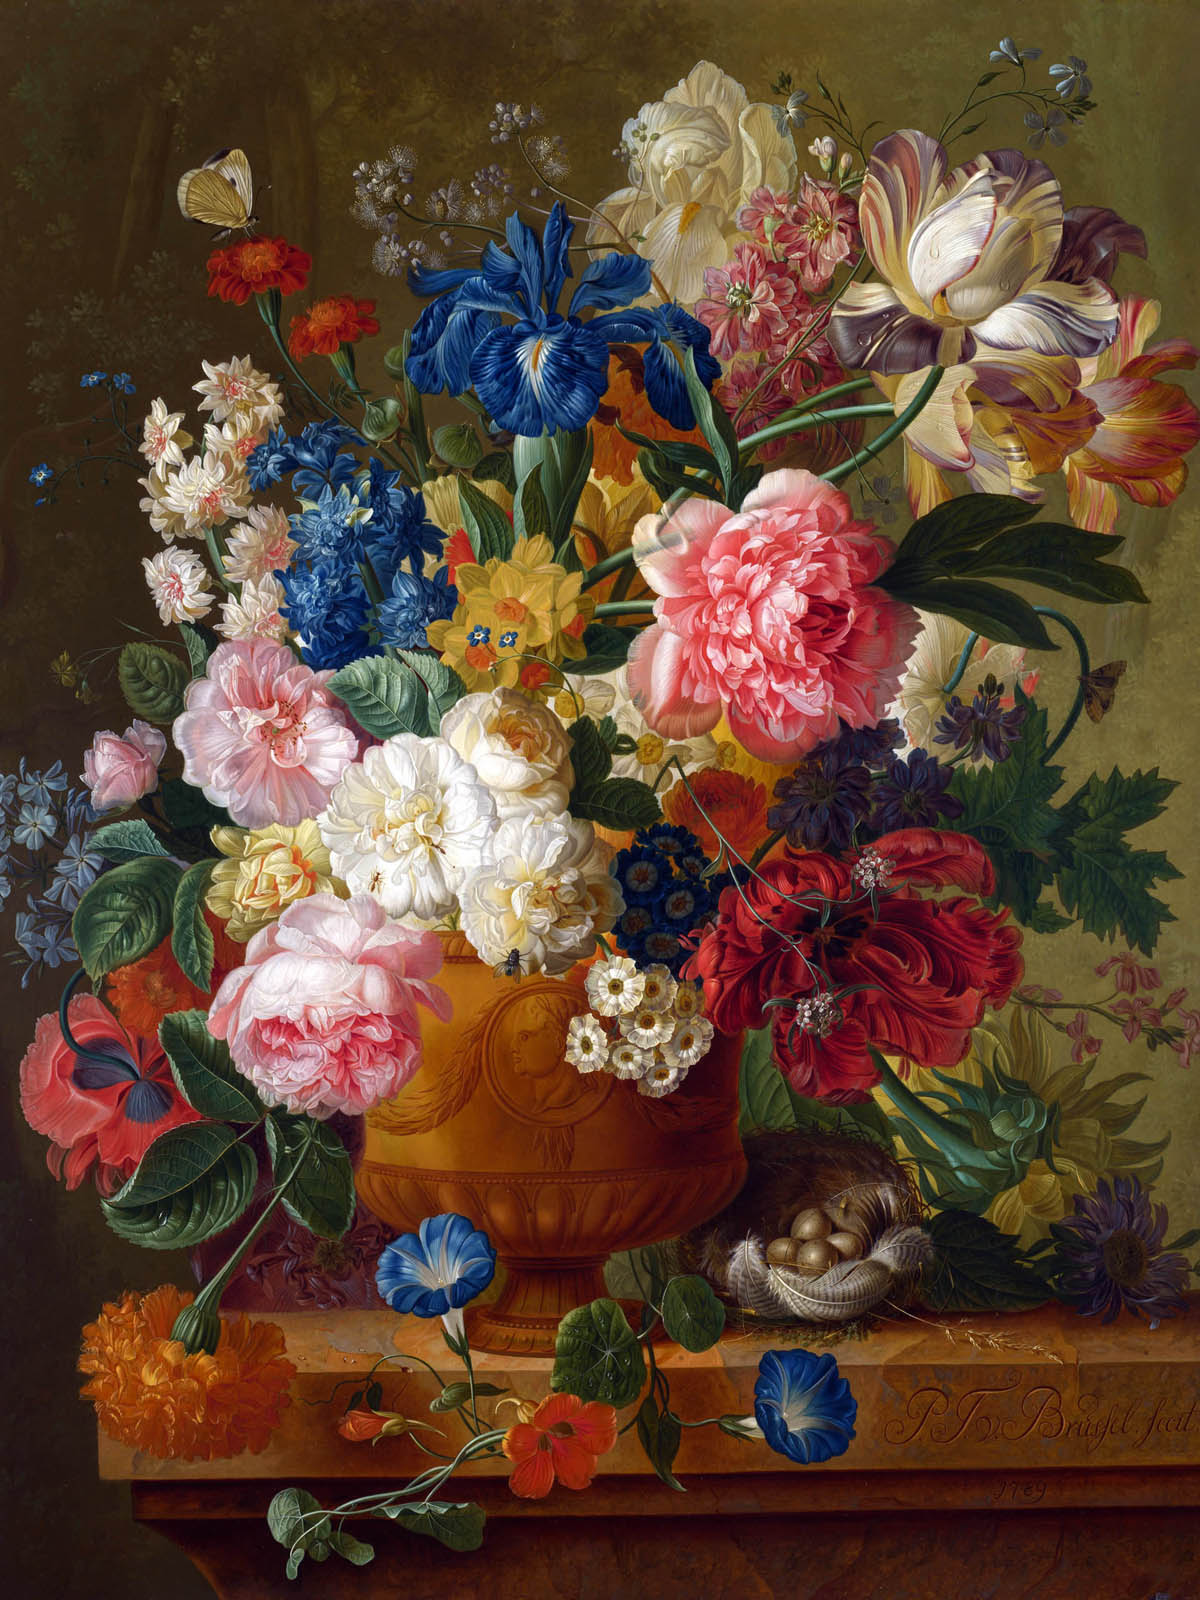 Appreciate the hand-painted flowers 1240